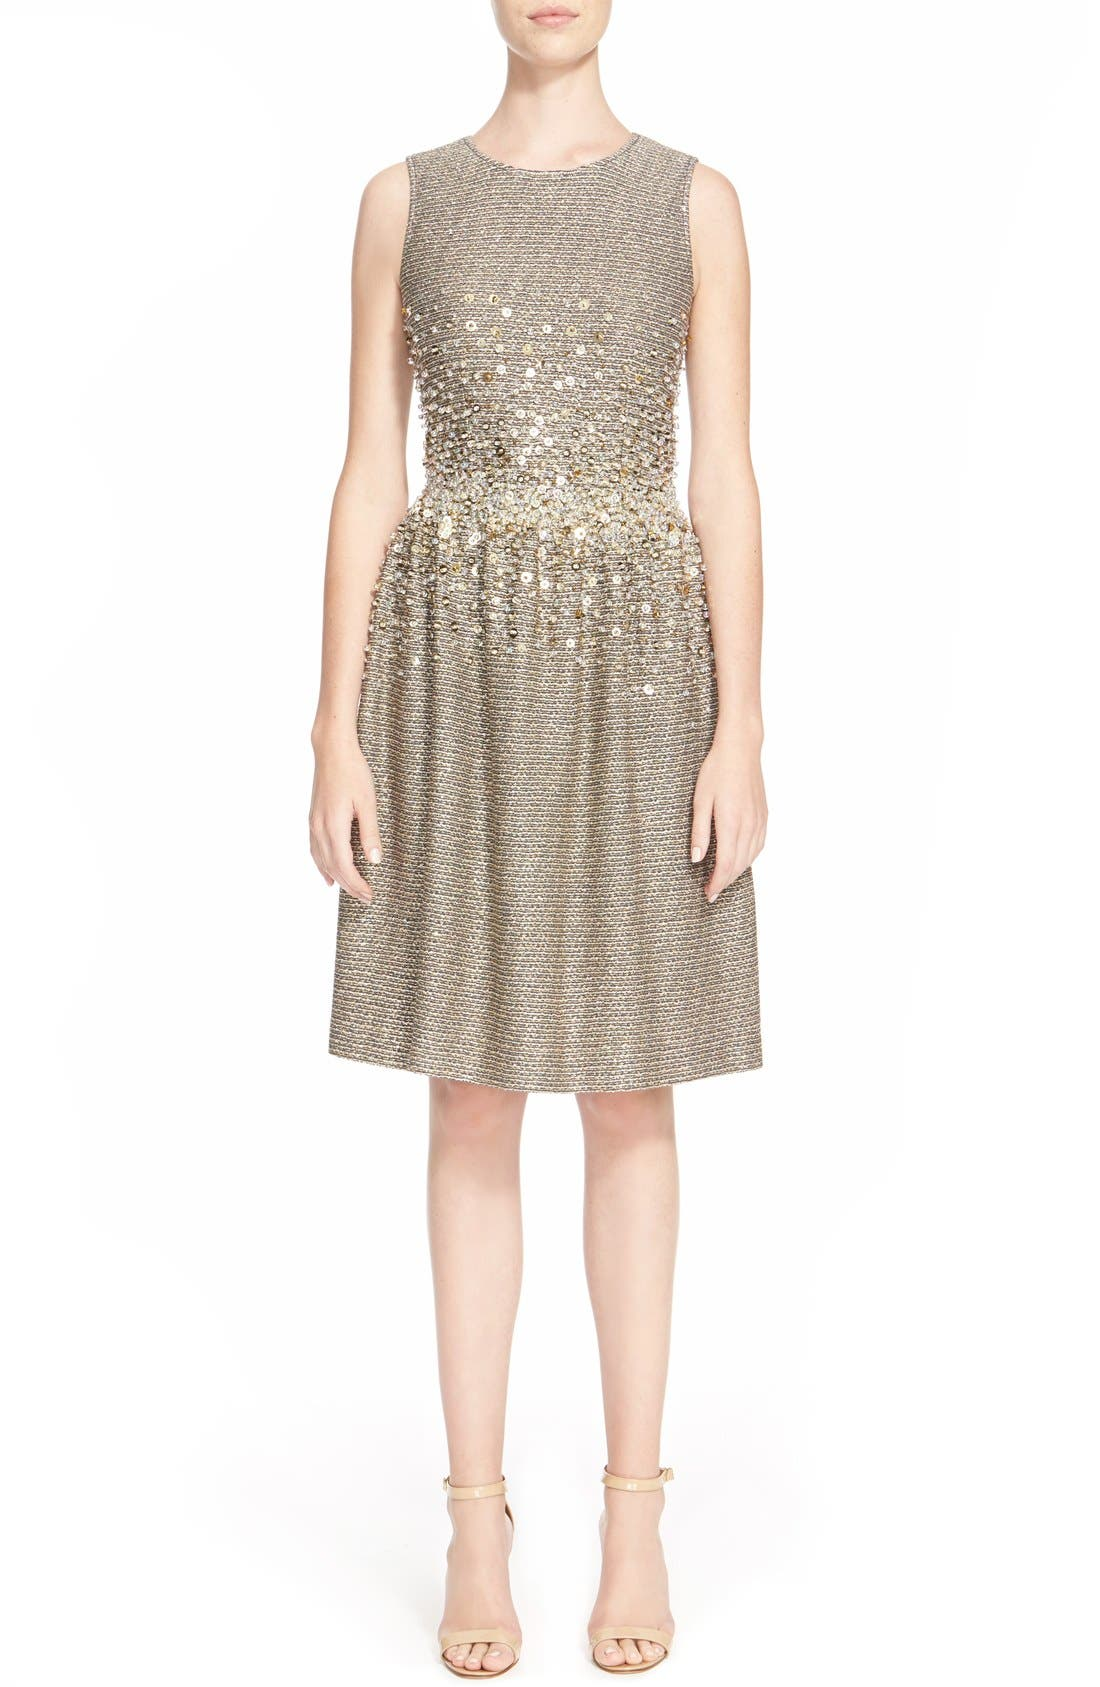 Alternate Image 1 Selected - St. John Collection Hand Beaded Bauble Knit Dress